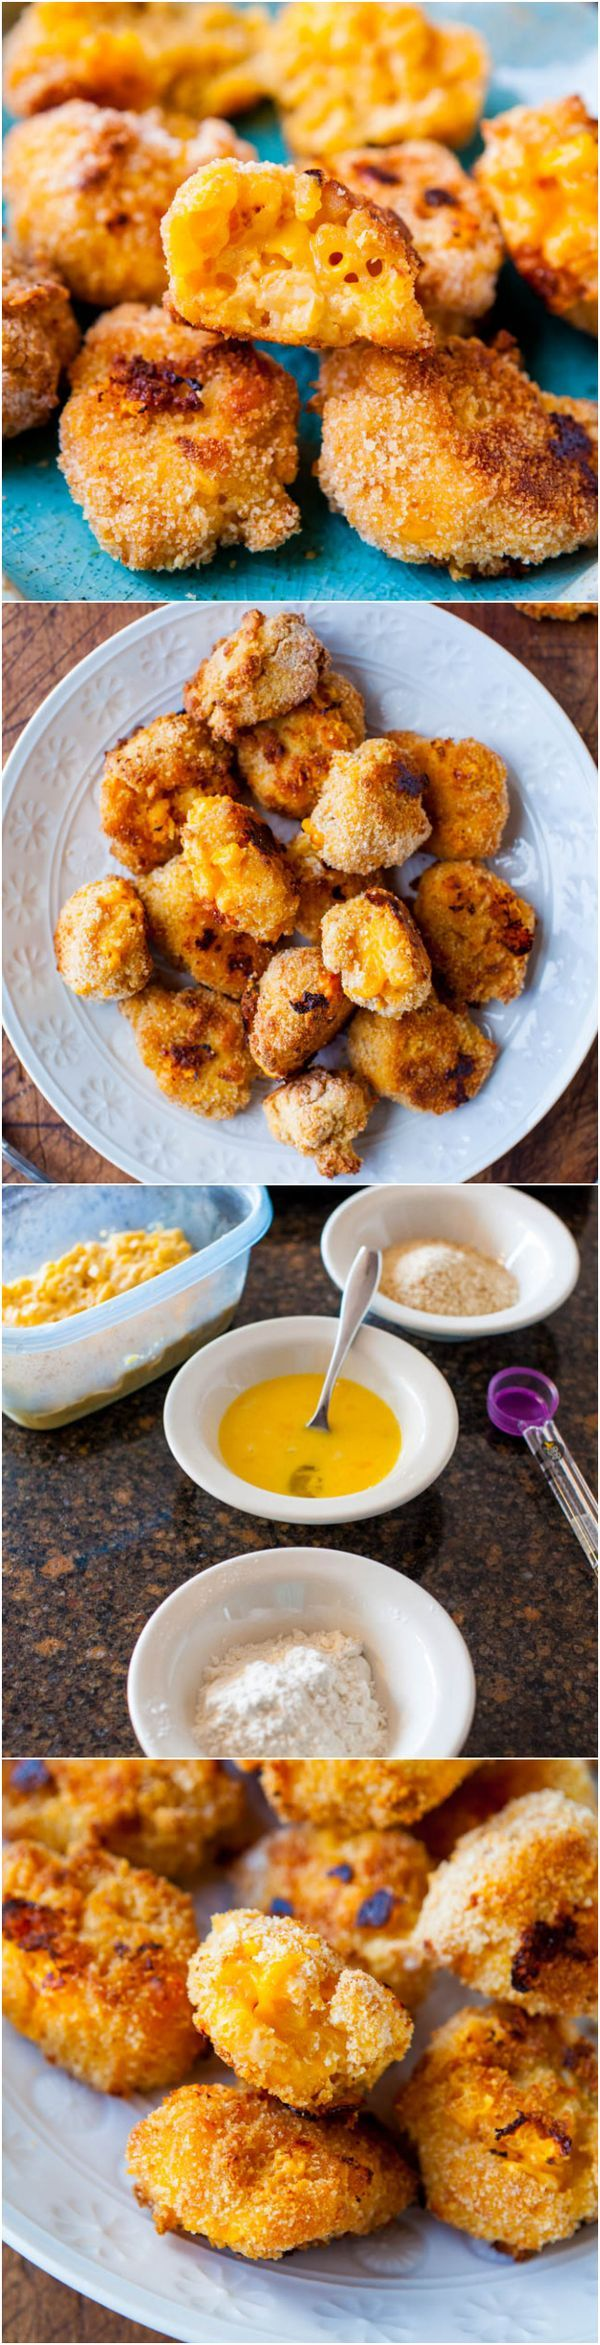 Macaroni and Cheese Baked Cheese Balls - A perfect use for the leftover macaroni that gets cold and old in your refrigerator. Bread it, bake it, devour it!